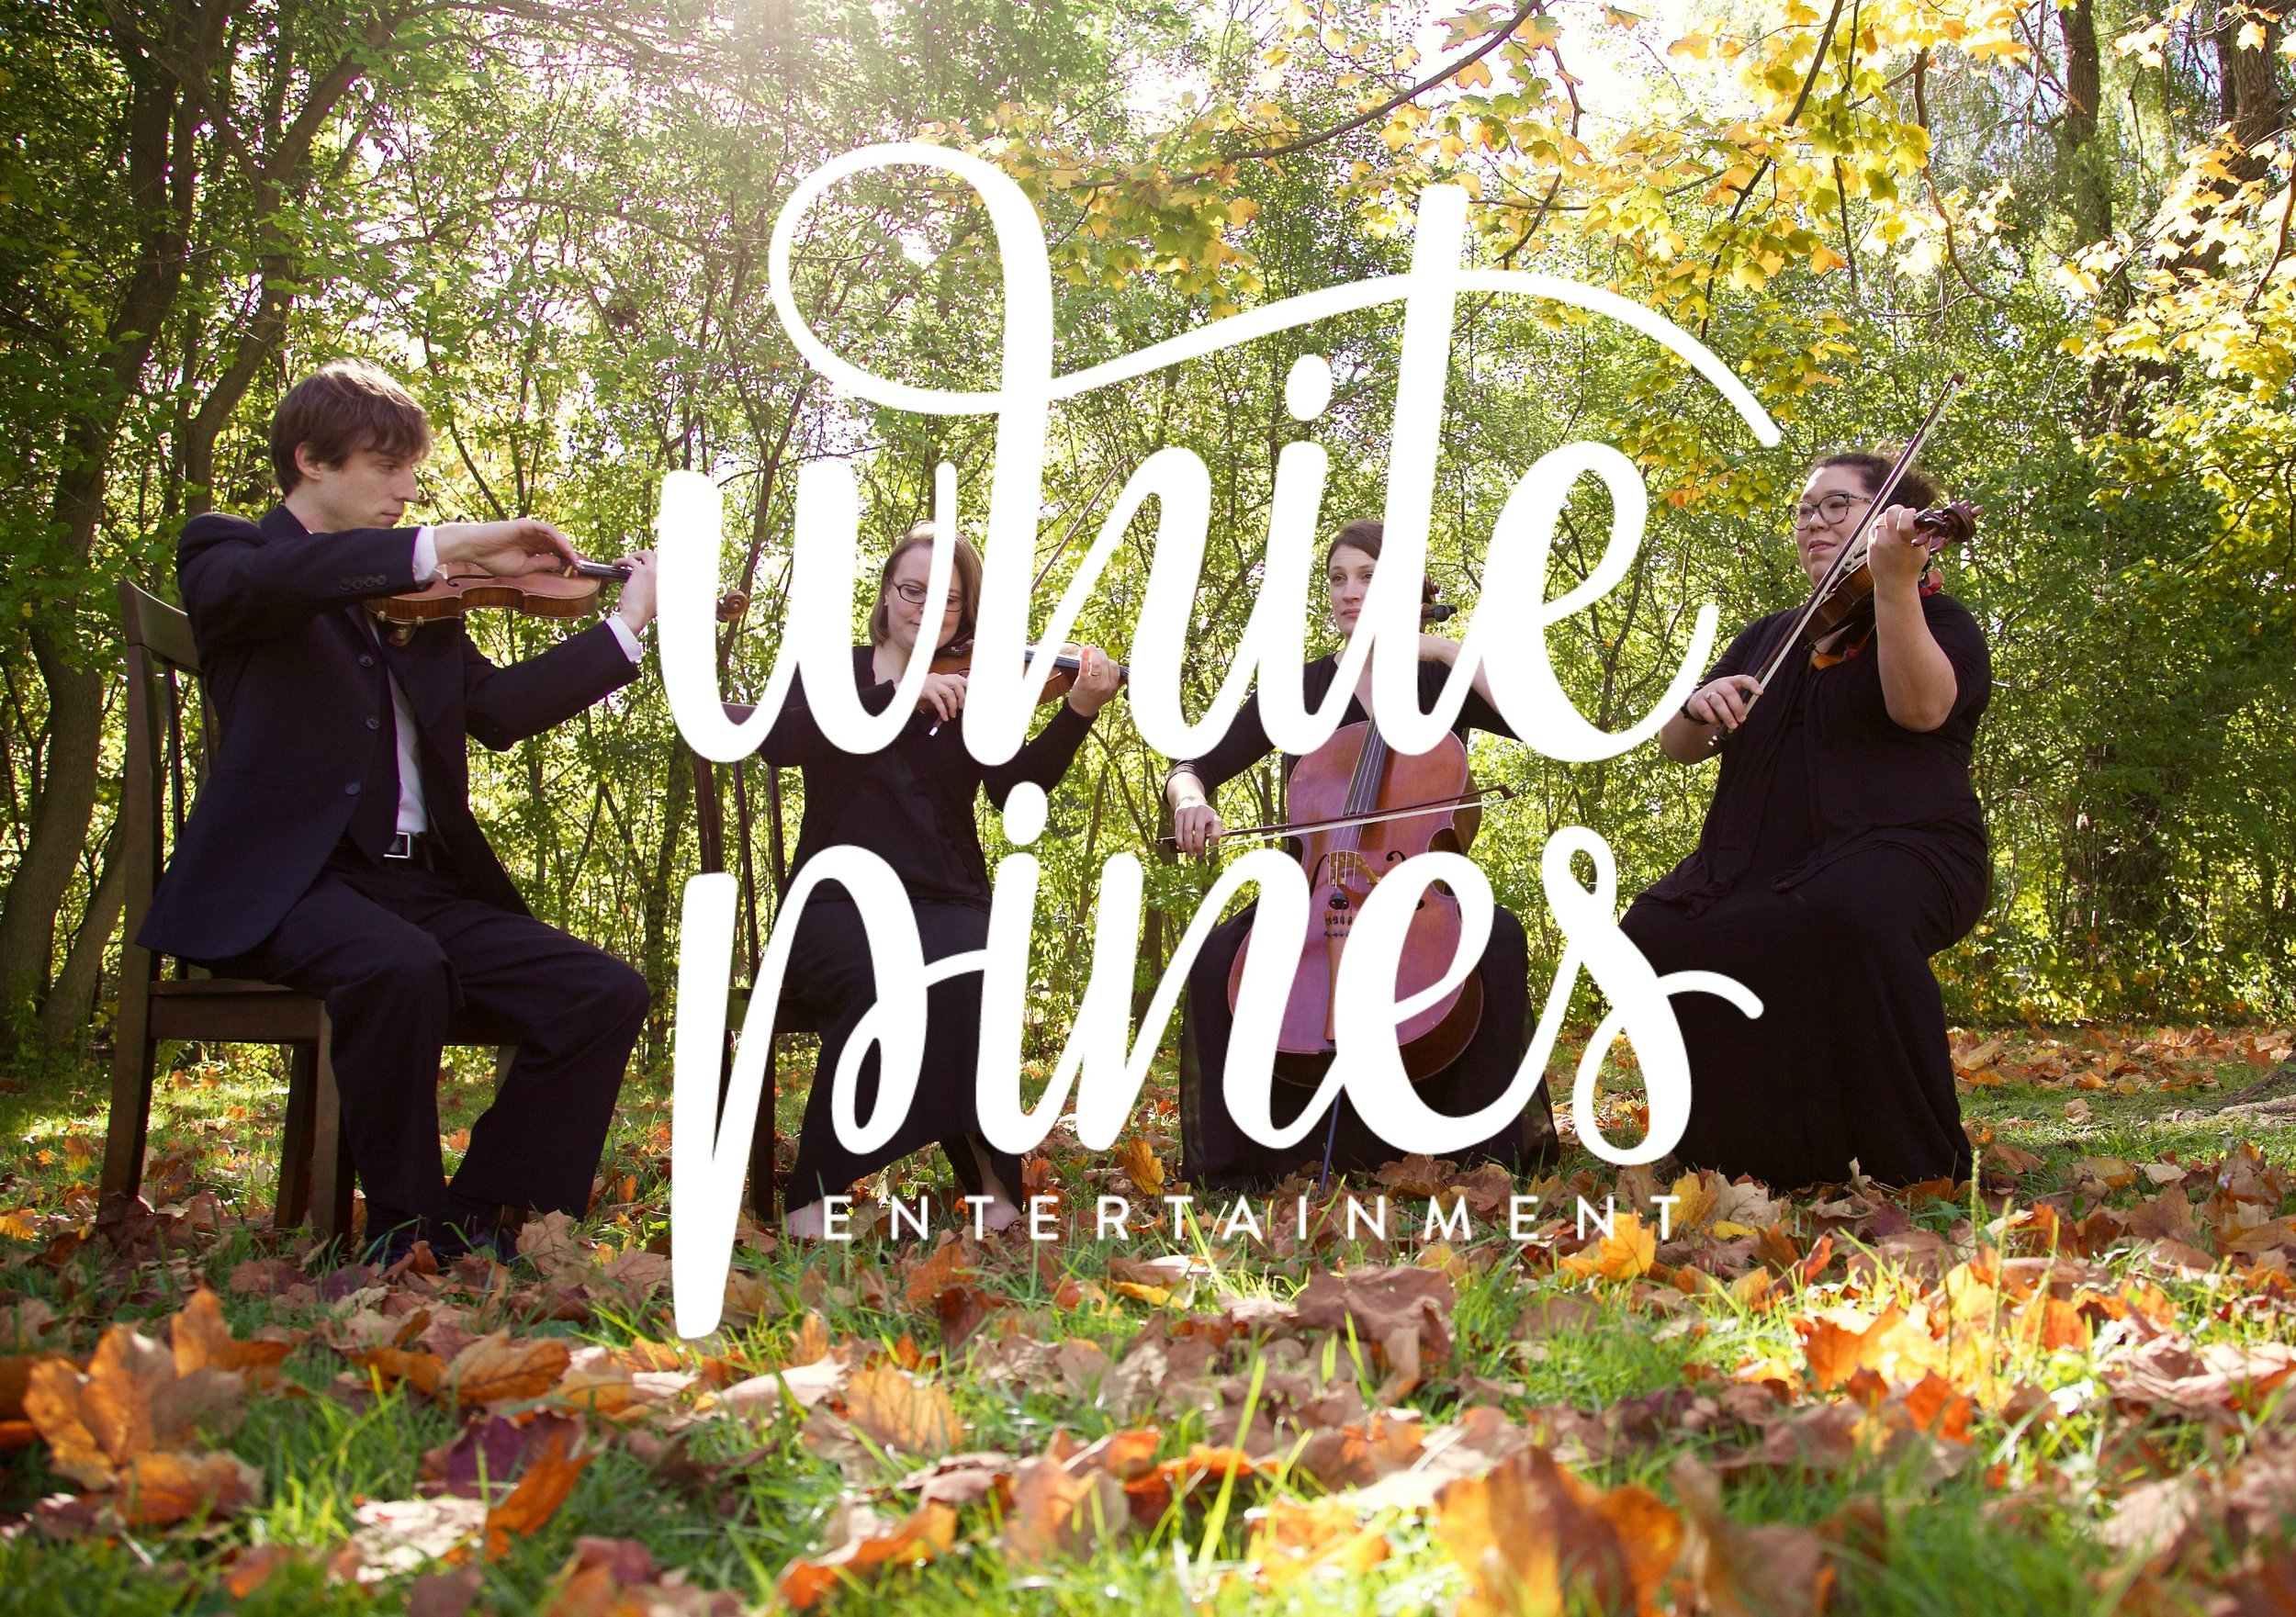 White Pines Entertainment String Quartet for wedding ceremony, and other special events